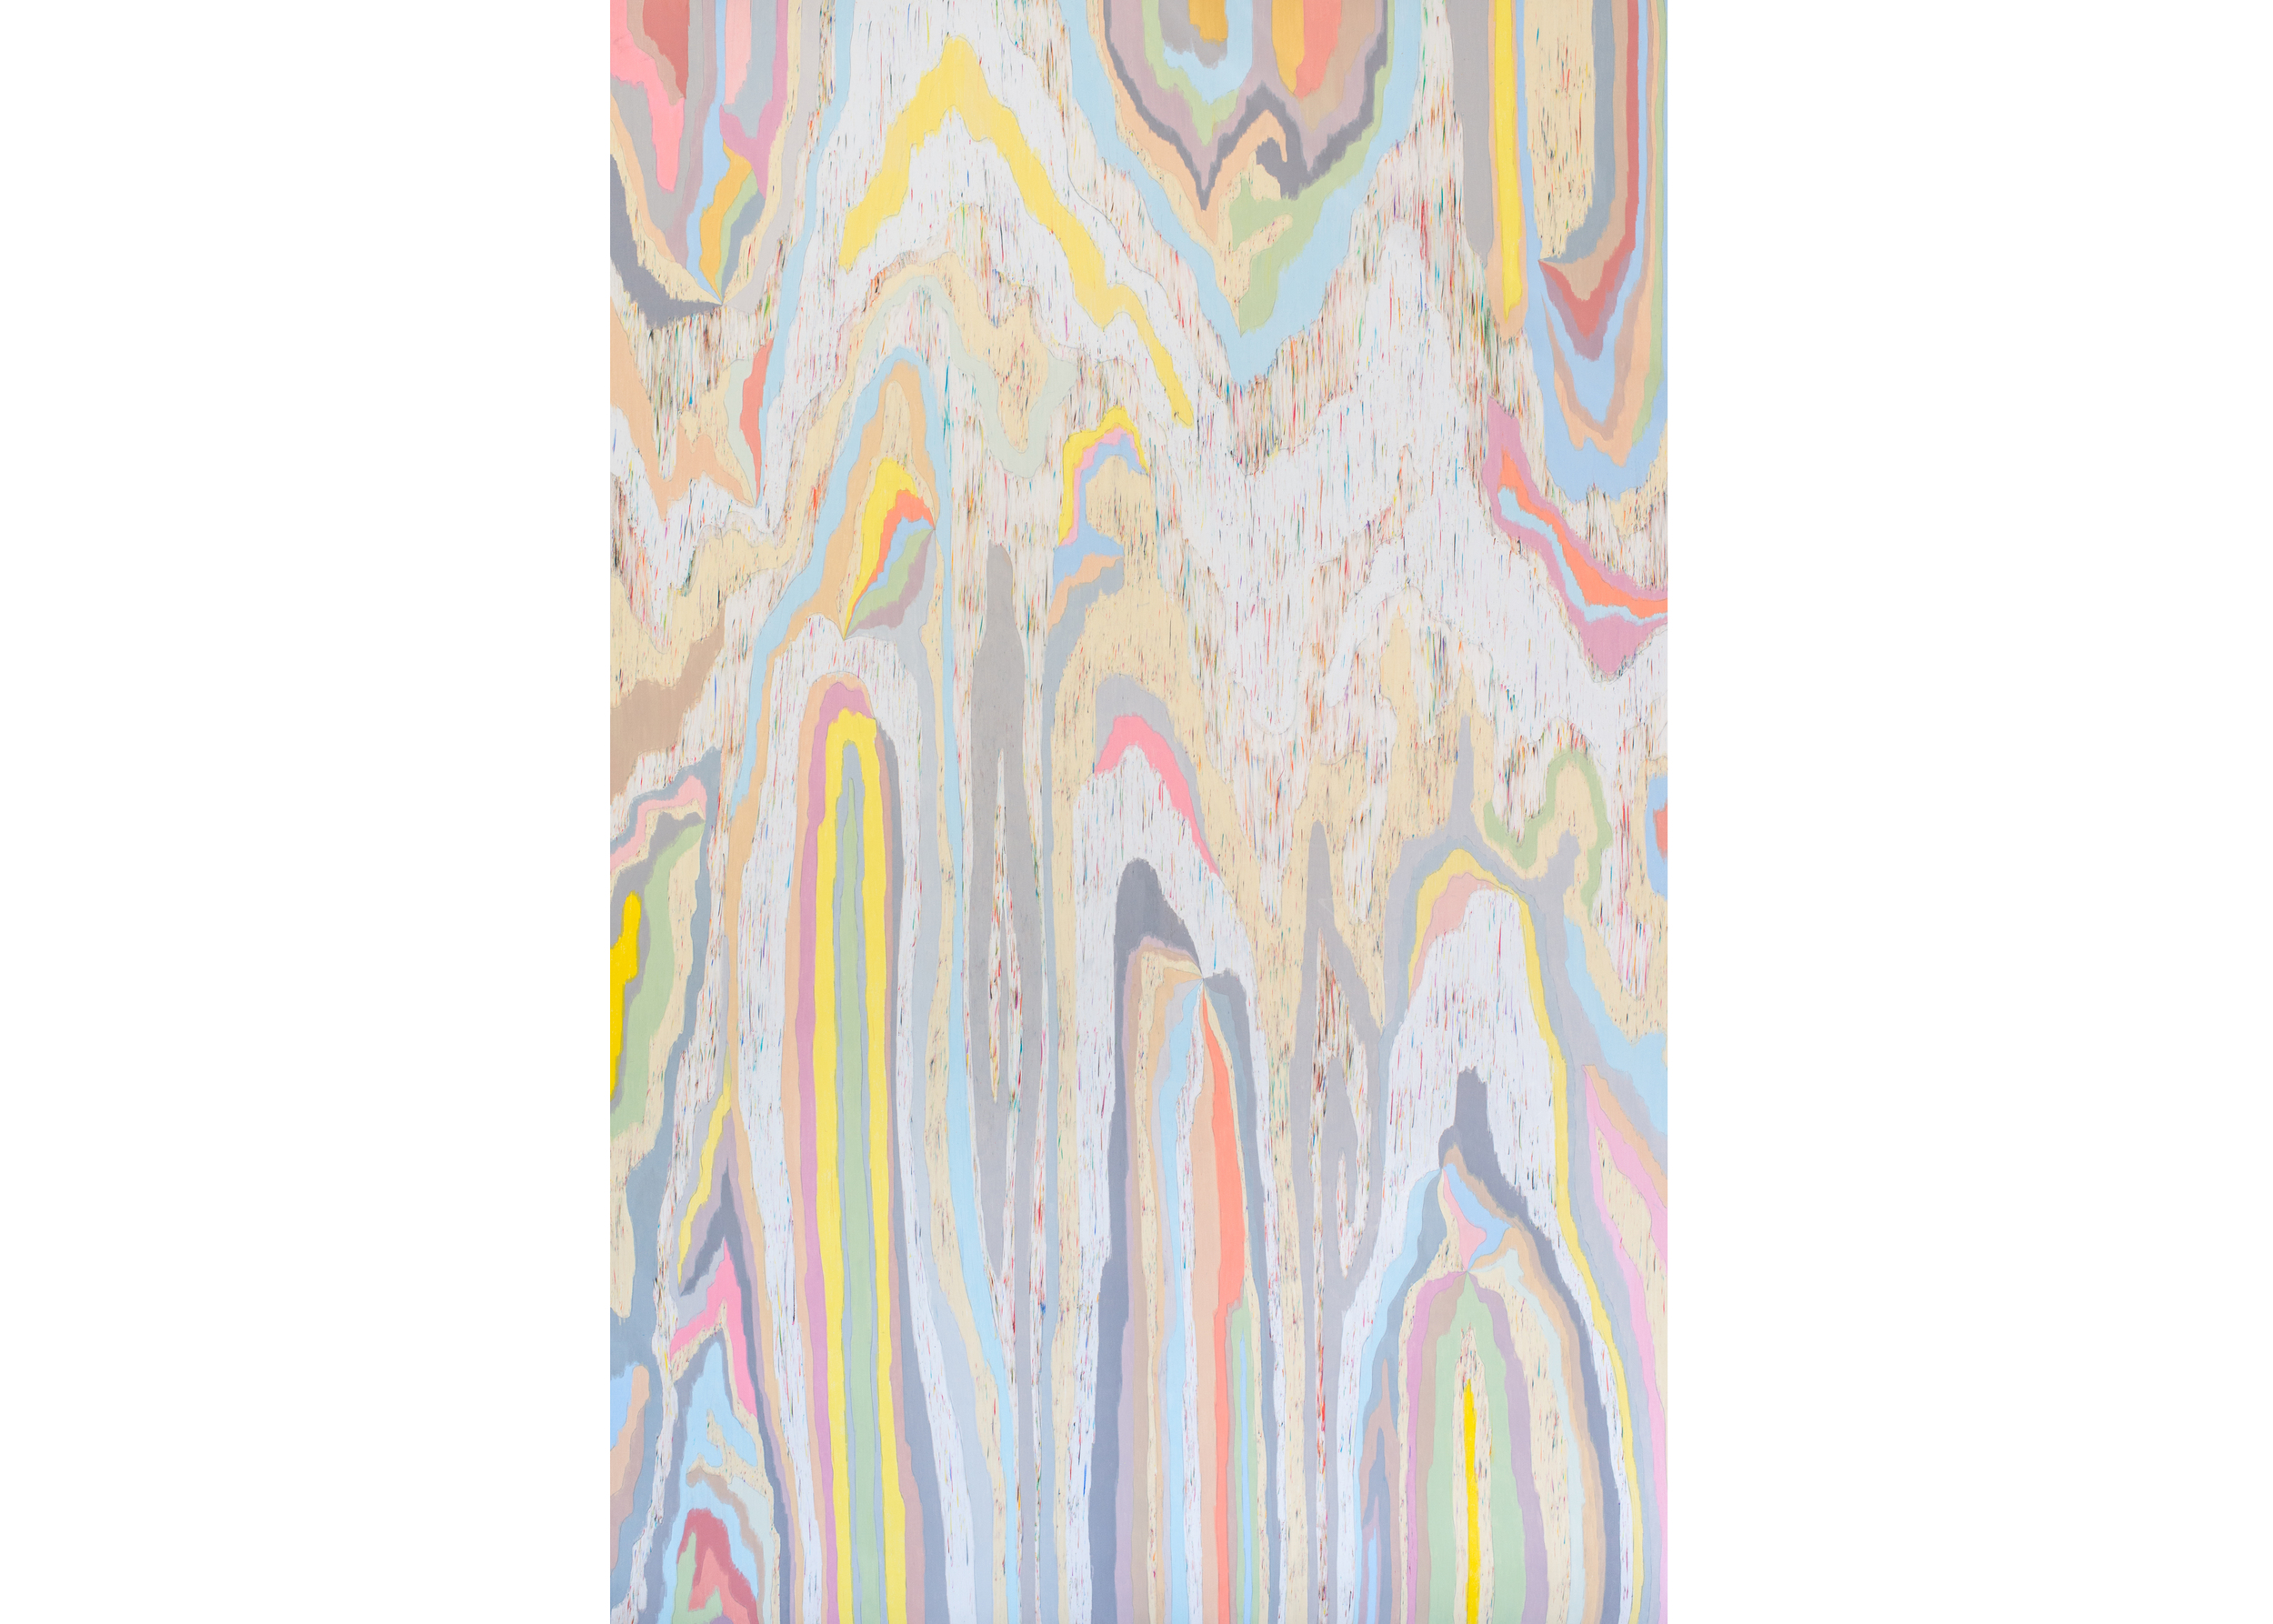 Scrambled Channel (3R1), 2014, color pencil on paper, 80 x 51 in.